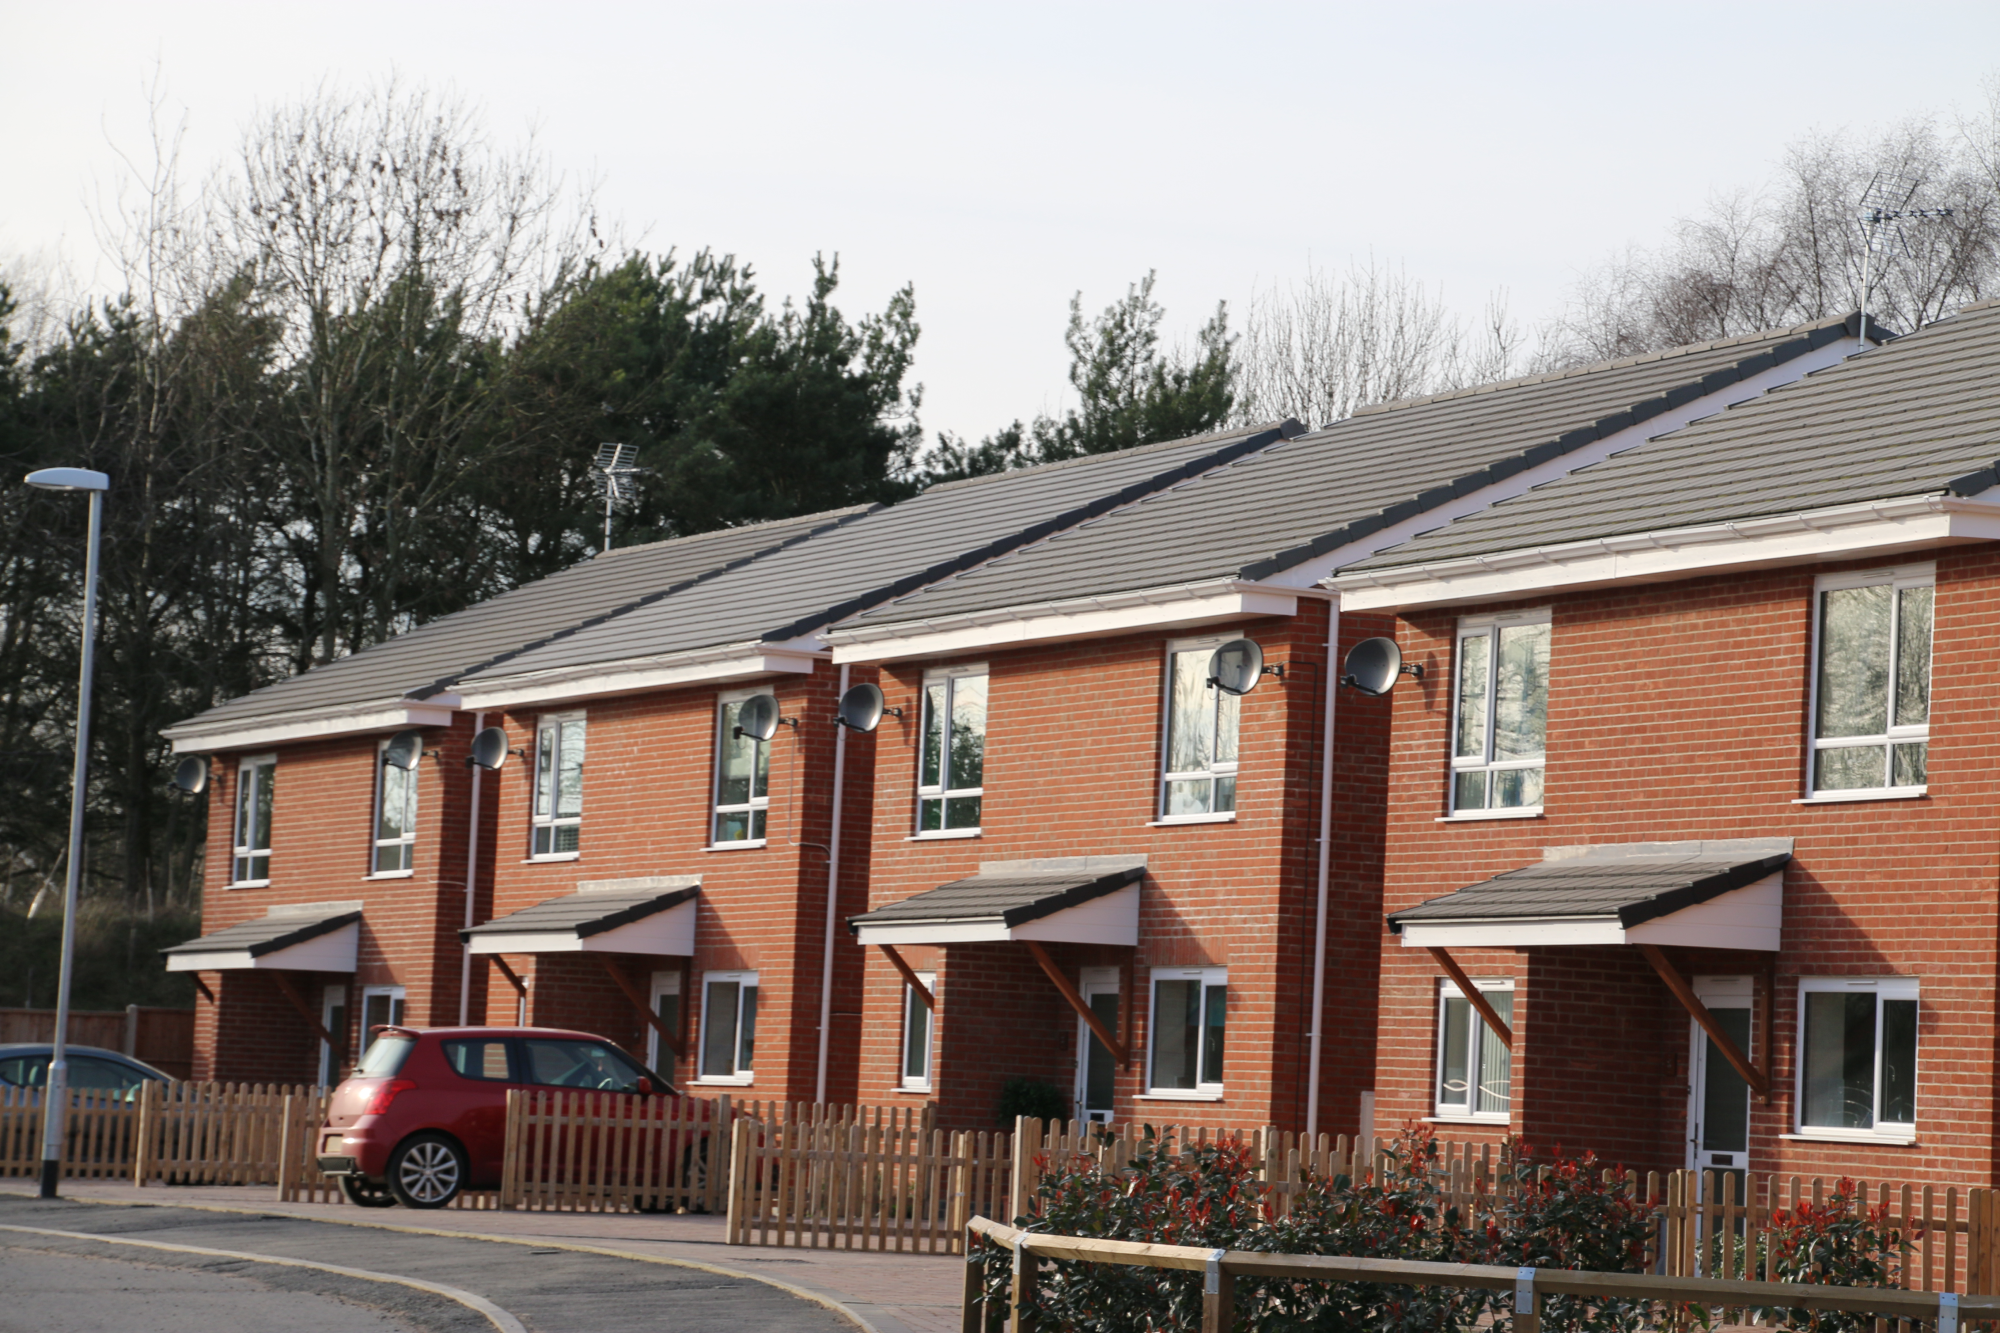 A line of new build houses with pitched tiled roofs